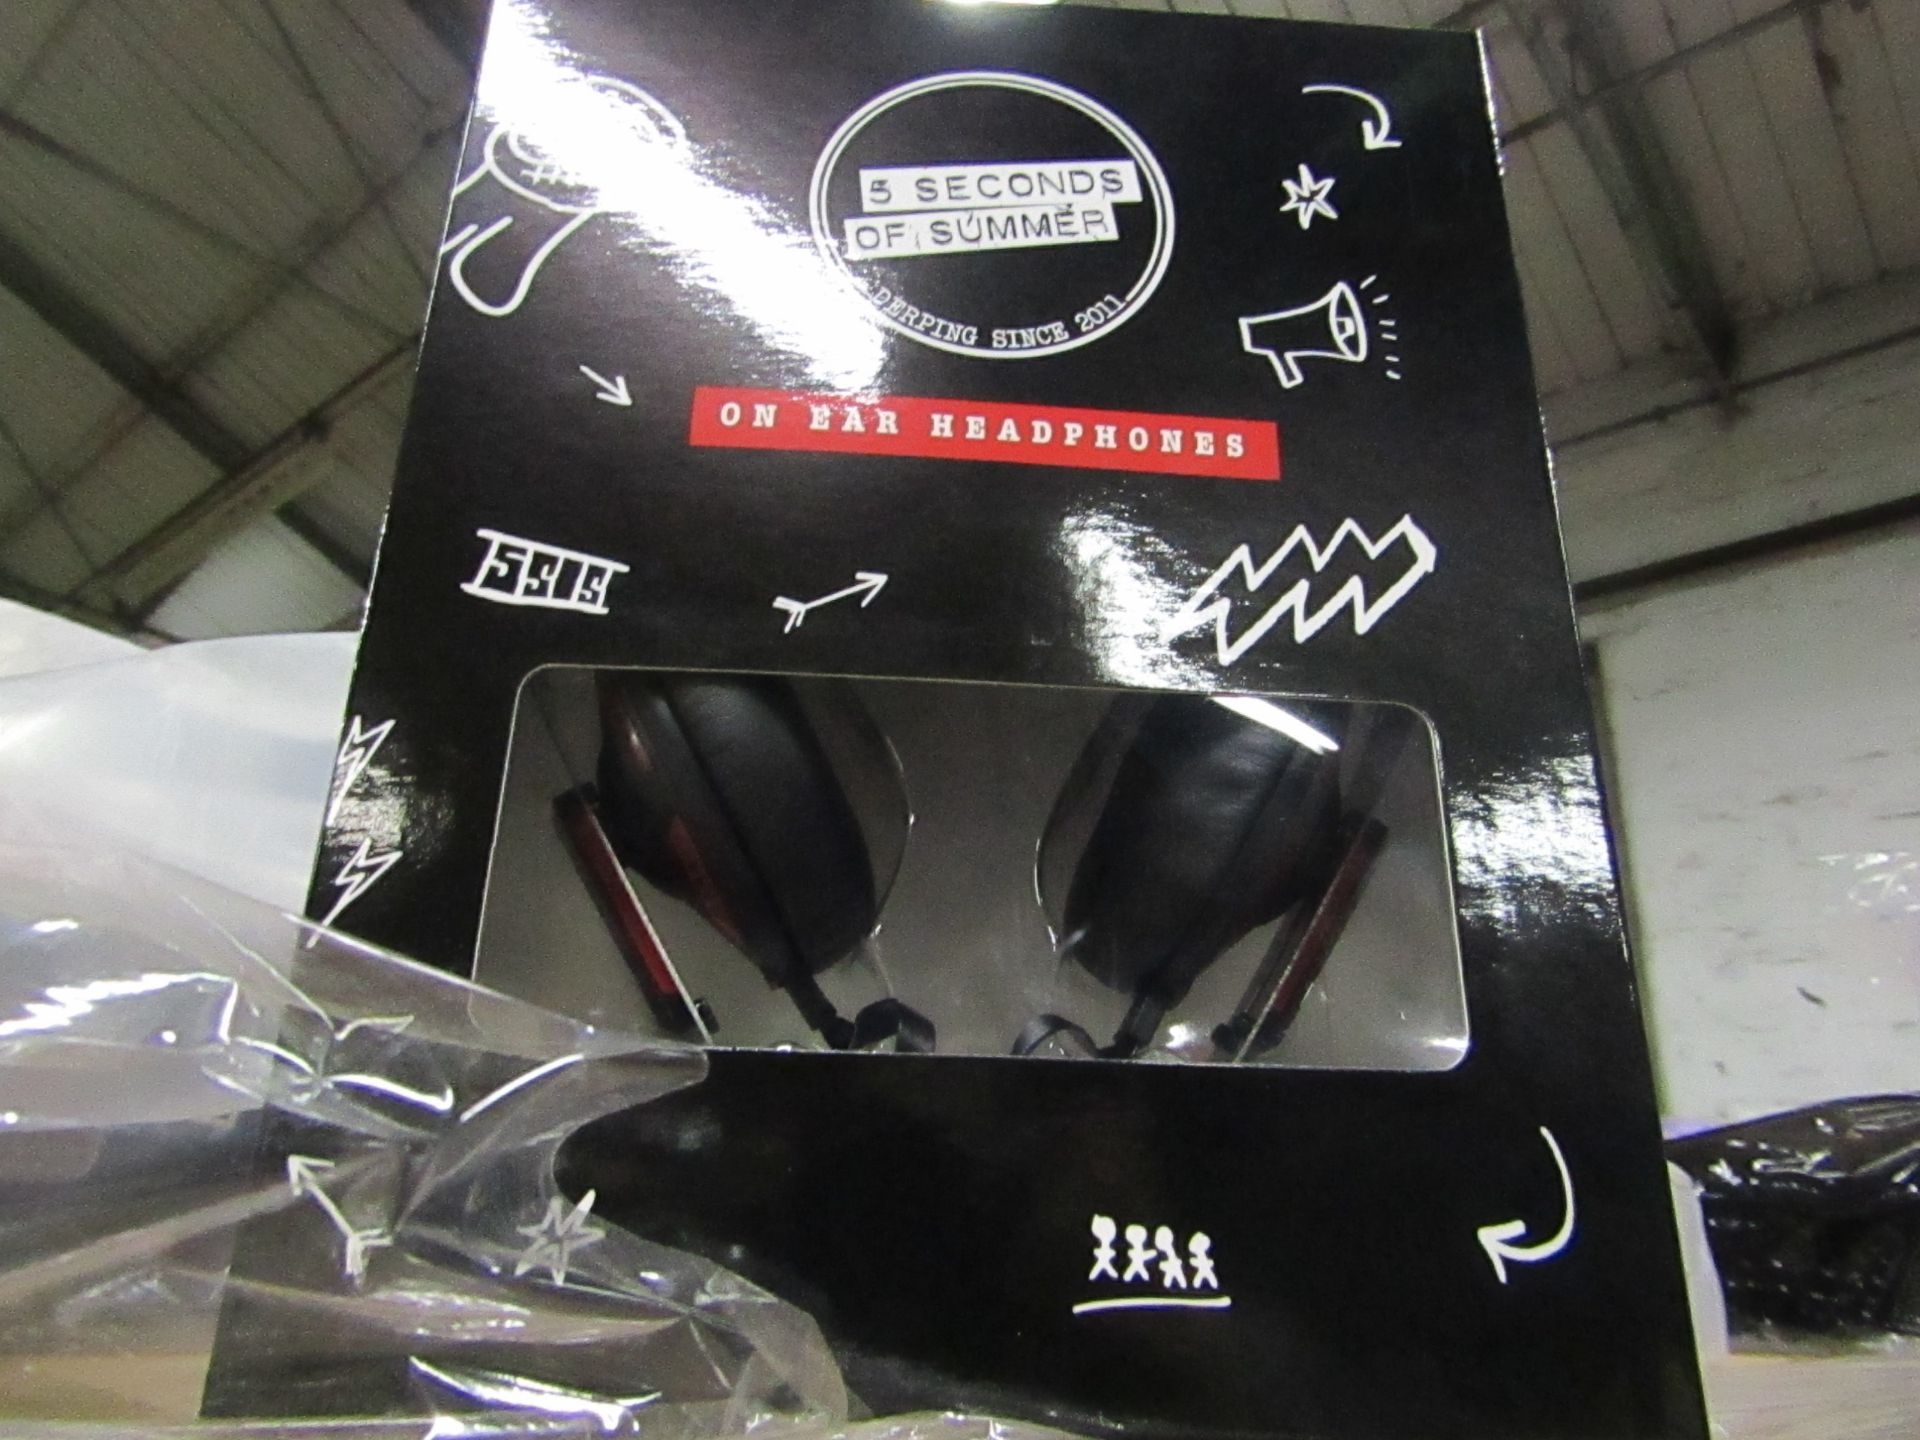 5 Seconds Of Summer Headphones - unchecked & Boxed